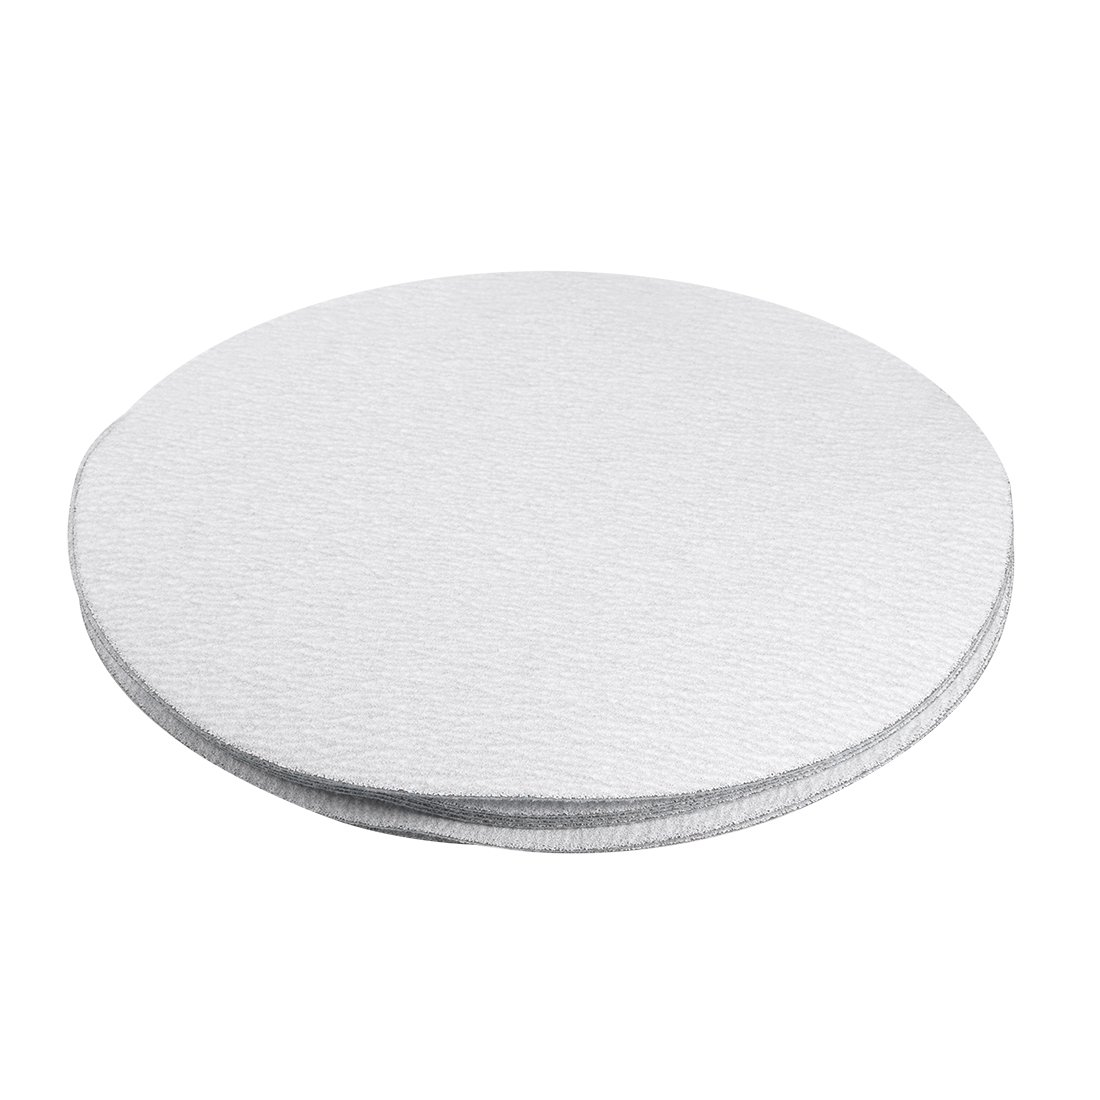 uxcell 50 Pcs 5-Inch Aluminum Oxide White Dry Hook and Loop Sanding Discs Flocking Sandpaper 80 Grit